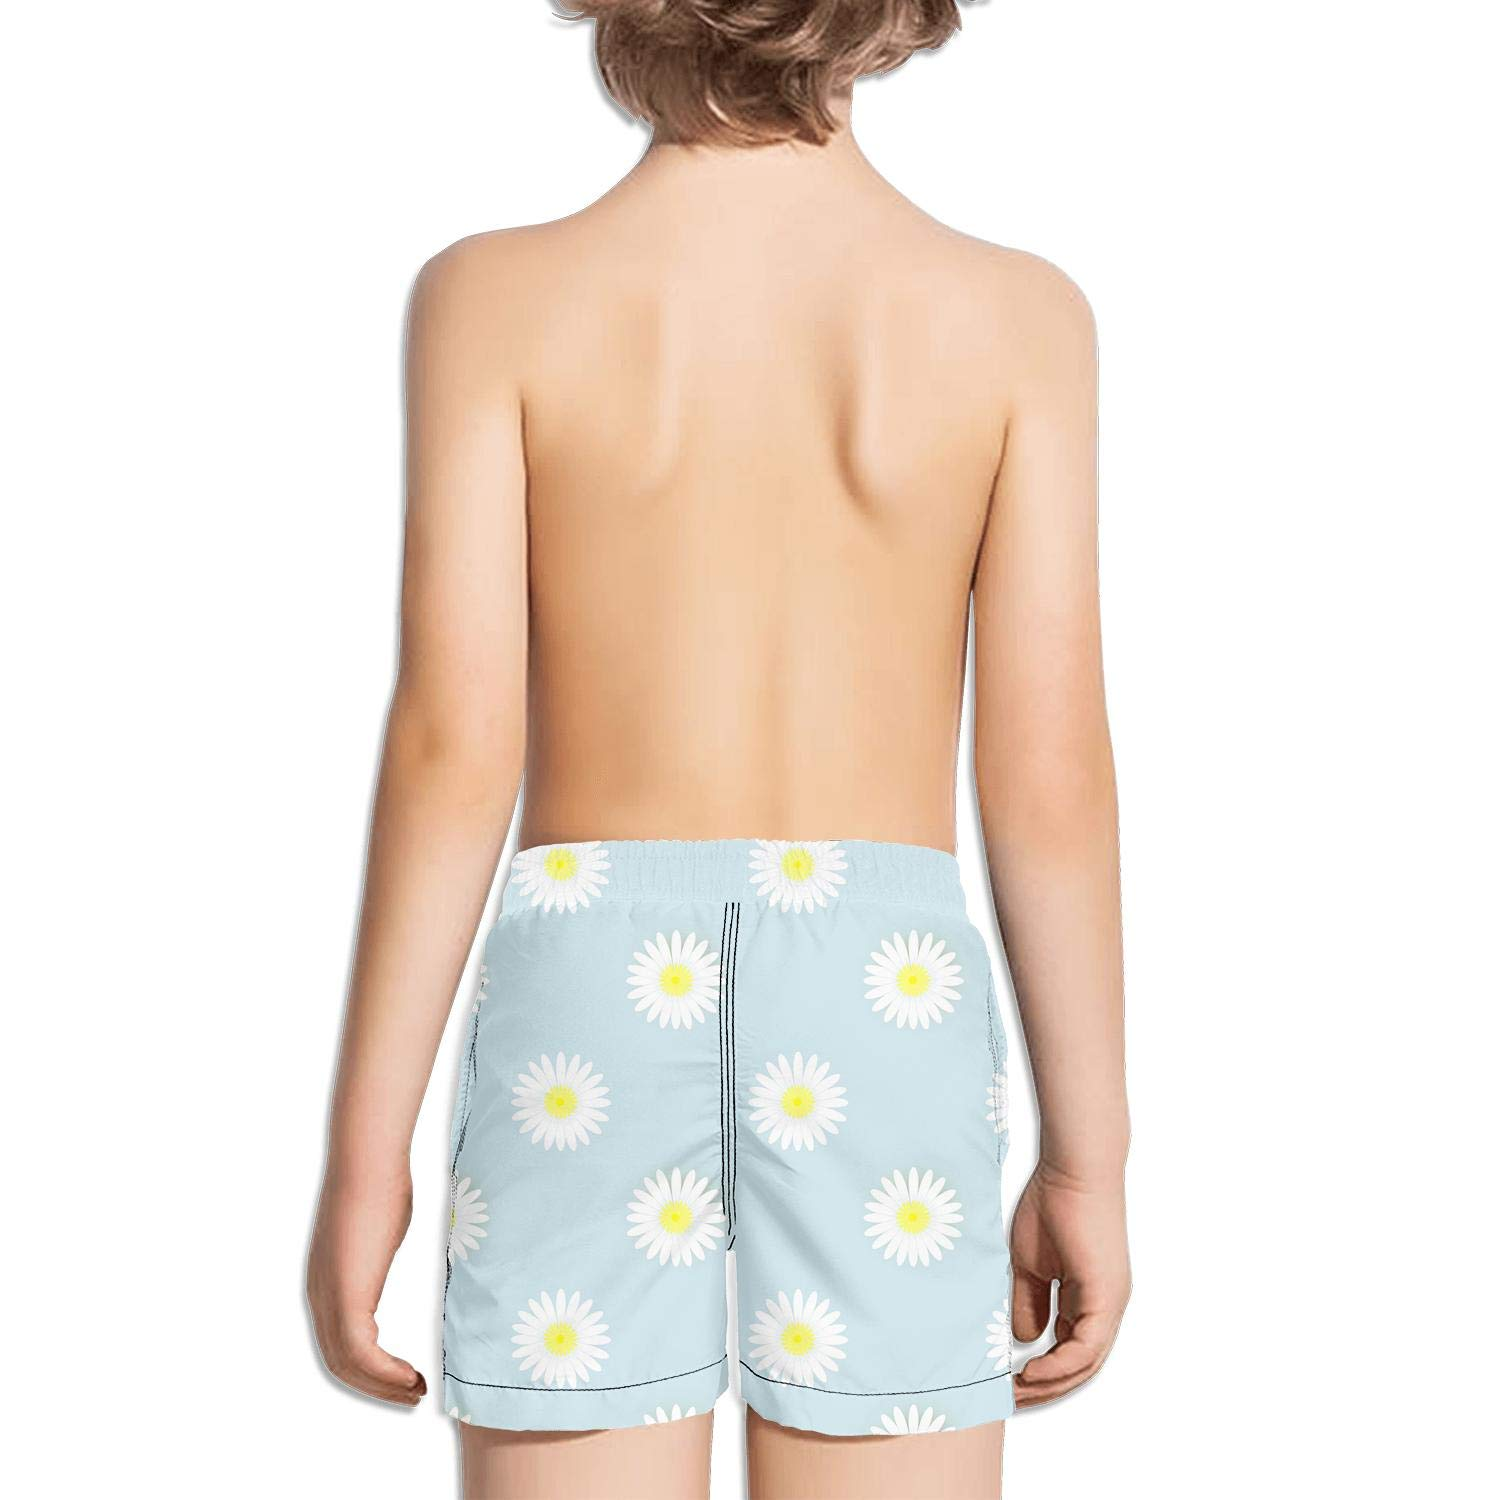 Boys Kids Daisy Pattern SkyBlue Quick Dry Beach Swim Trunk Novelty Swimsuit Beach Shorts with Drawstring